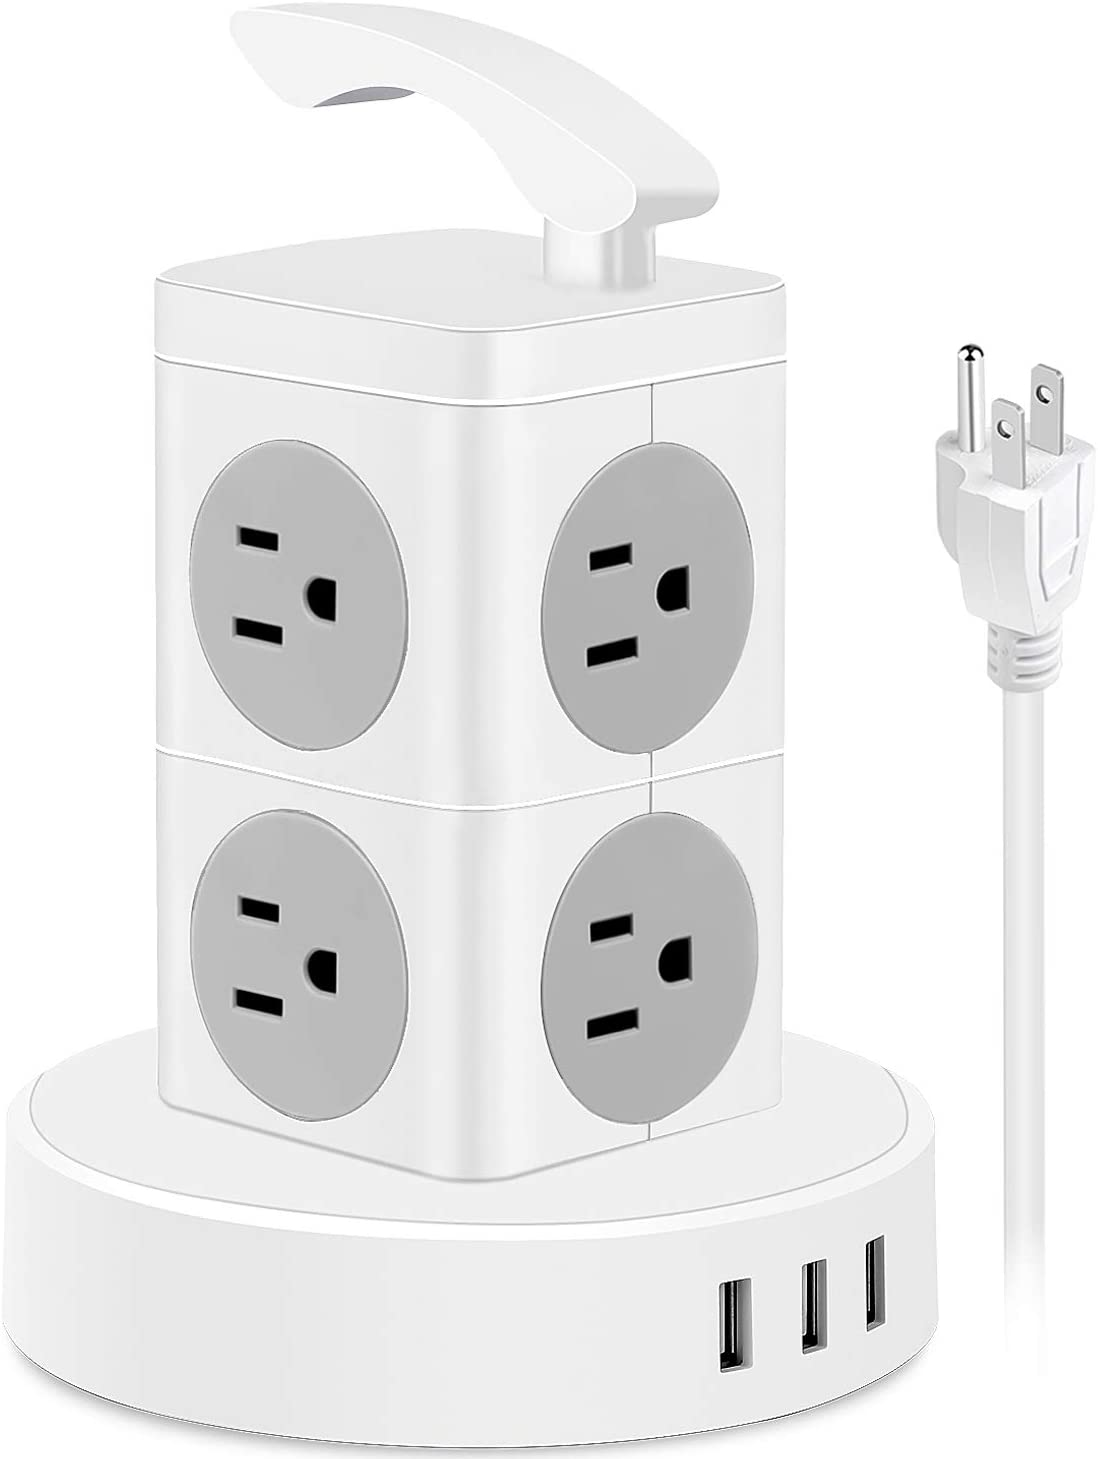 Power Strip Tower Surge Protector, 8 AC Outlets 3 USB Ports Electric Charging Station with 6.6 ft Extension Cord, 1625W 13A Desktop Power Strip with Handle, Circuit Breaker Safeguard for Home Office